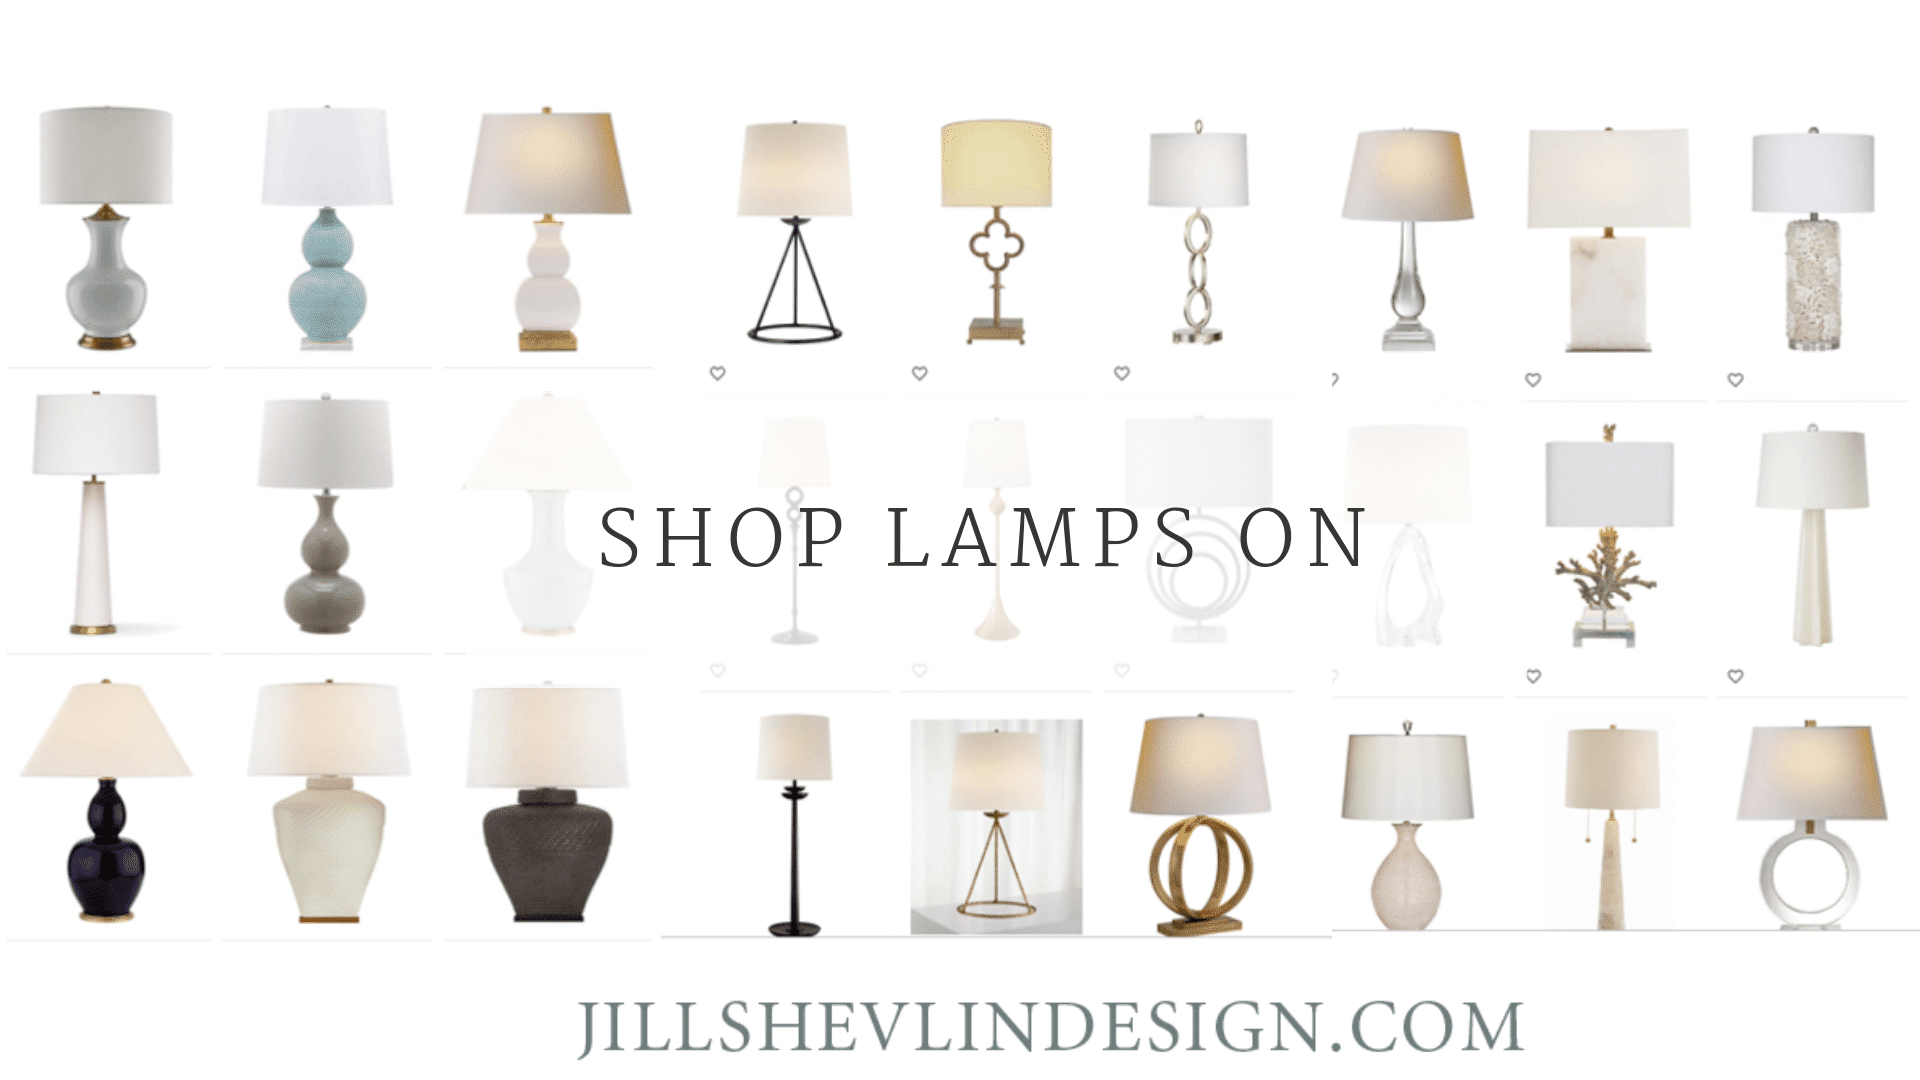 Crystal Lamps, Ceramic Lamps, Metal Lamps, Shop Lamps from Vero Beach Designer Jill Shevlin for your Vero Beach Coastal Home Decor Traditional Home Decorating